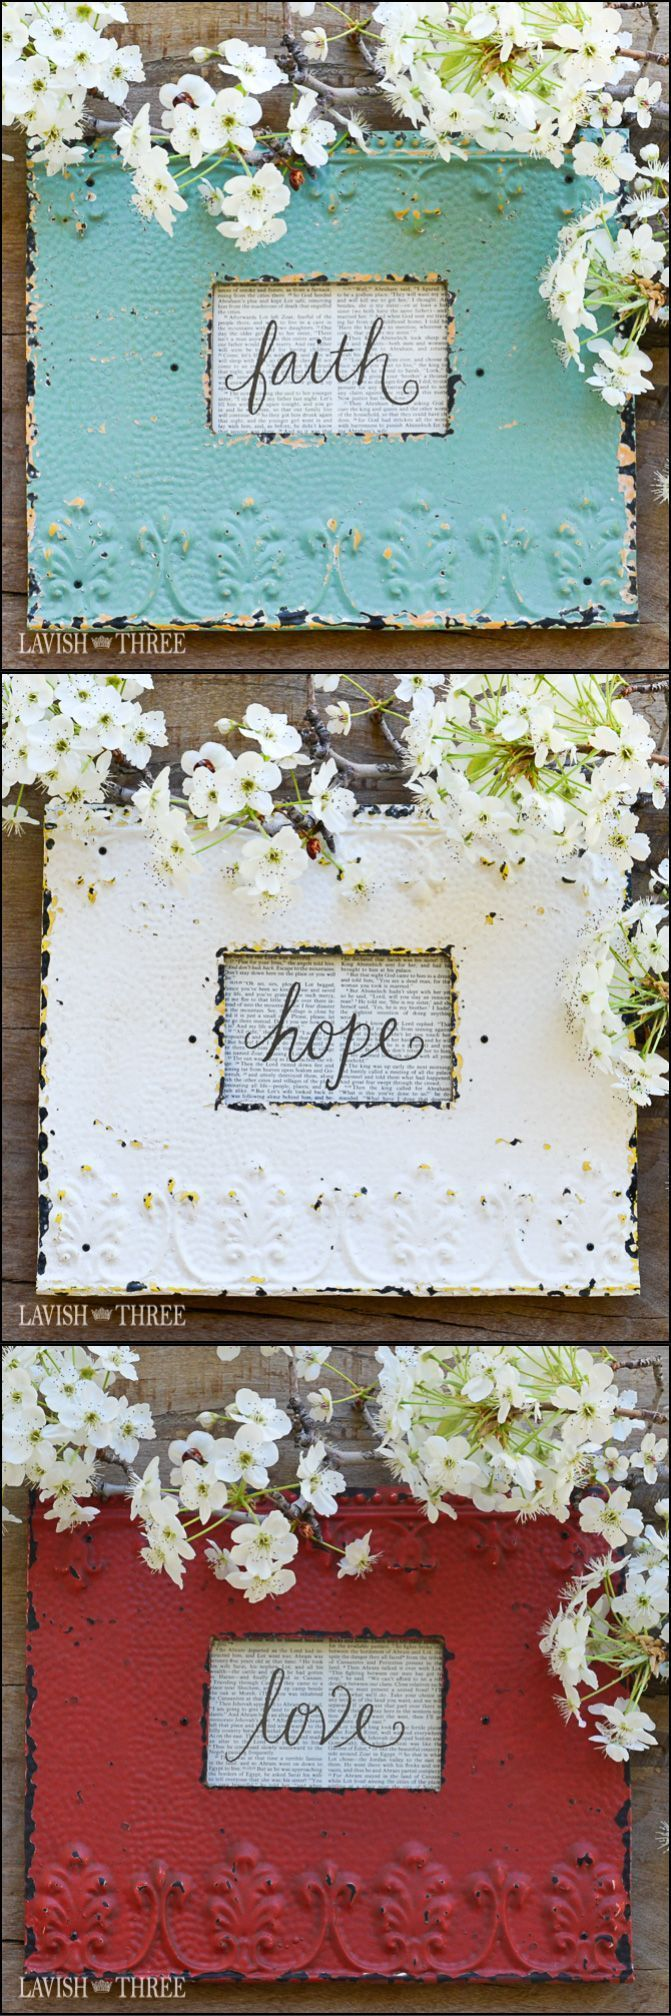 """The shabby chic feel and look of these embossed metal frames add a touch of """"home sweet home"""" appeal to any space. The bold yet washed out colors partnered with the stand-out textures make an unforgettable impression. We adore the charm of the little space provided to display just a hint of nature, a small photograph, or a sweet memento."""